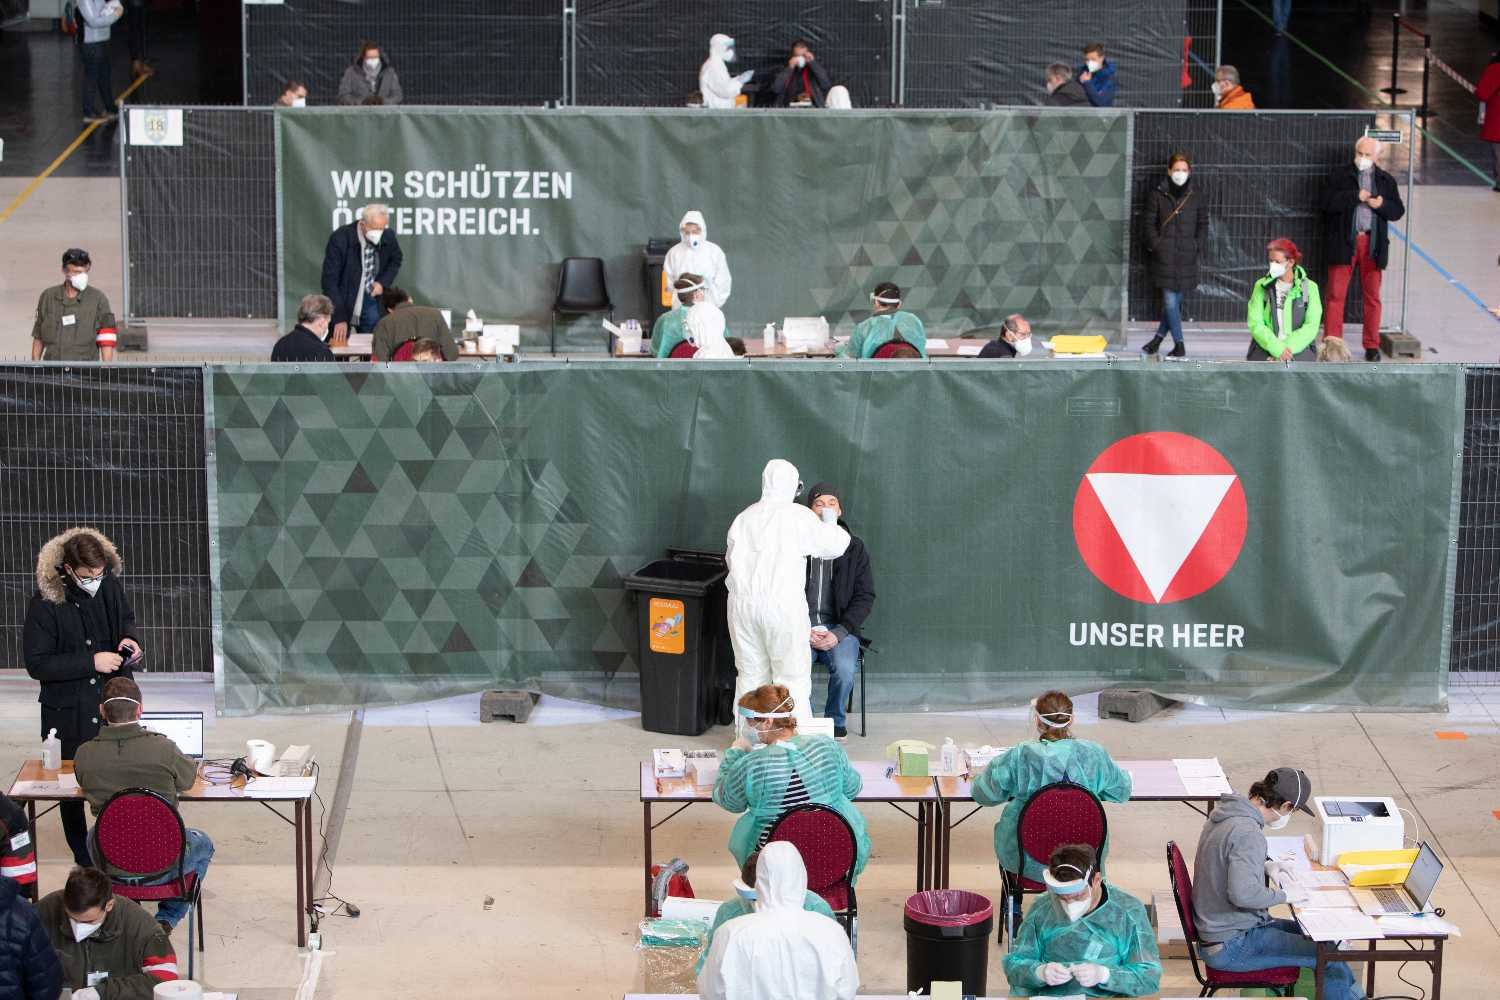 'Three million tests a week': Has Austria got the right Covid strategy?